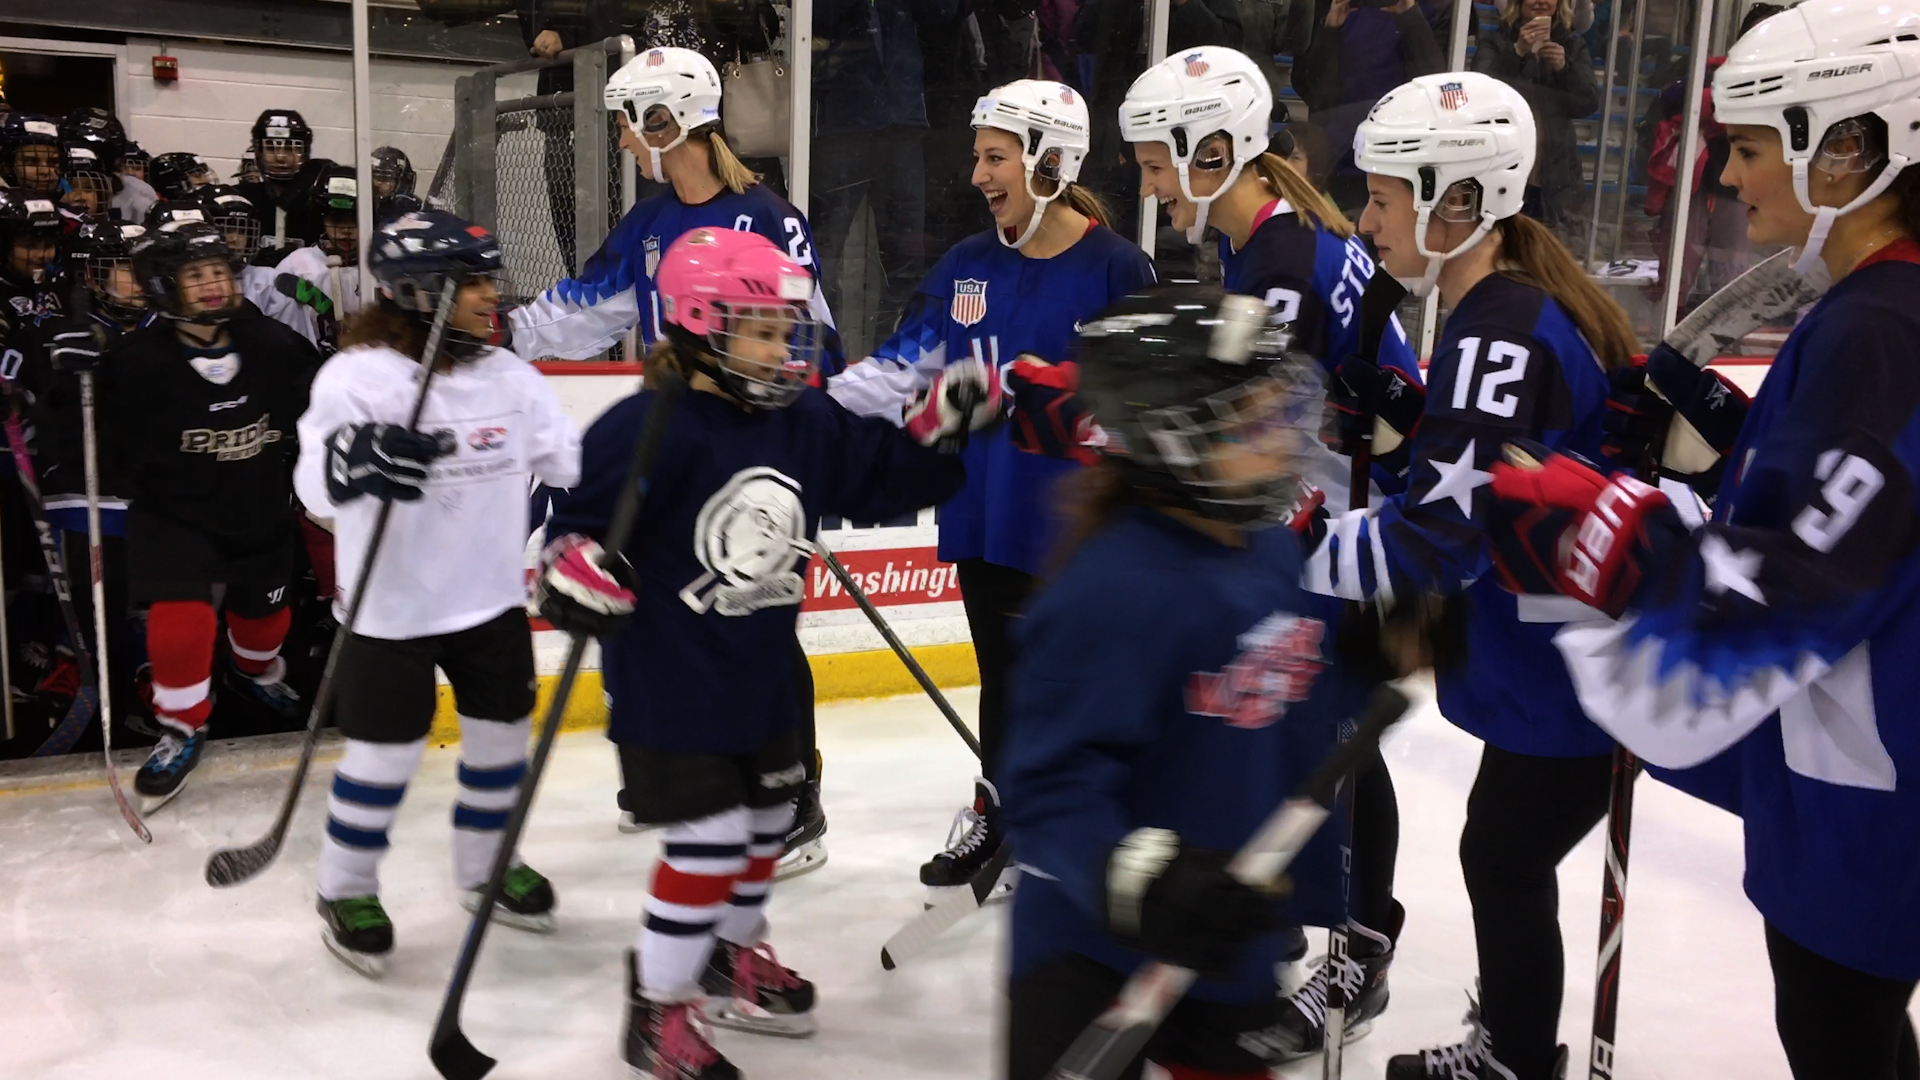 Young women hockey players dressed in gear on an ice rink high five a line of young girls in hockey gear as they enter the rink